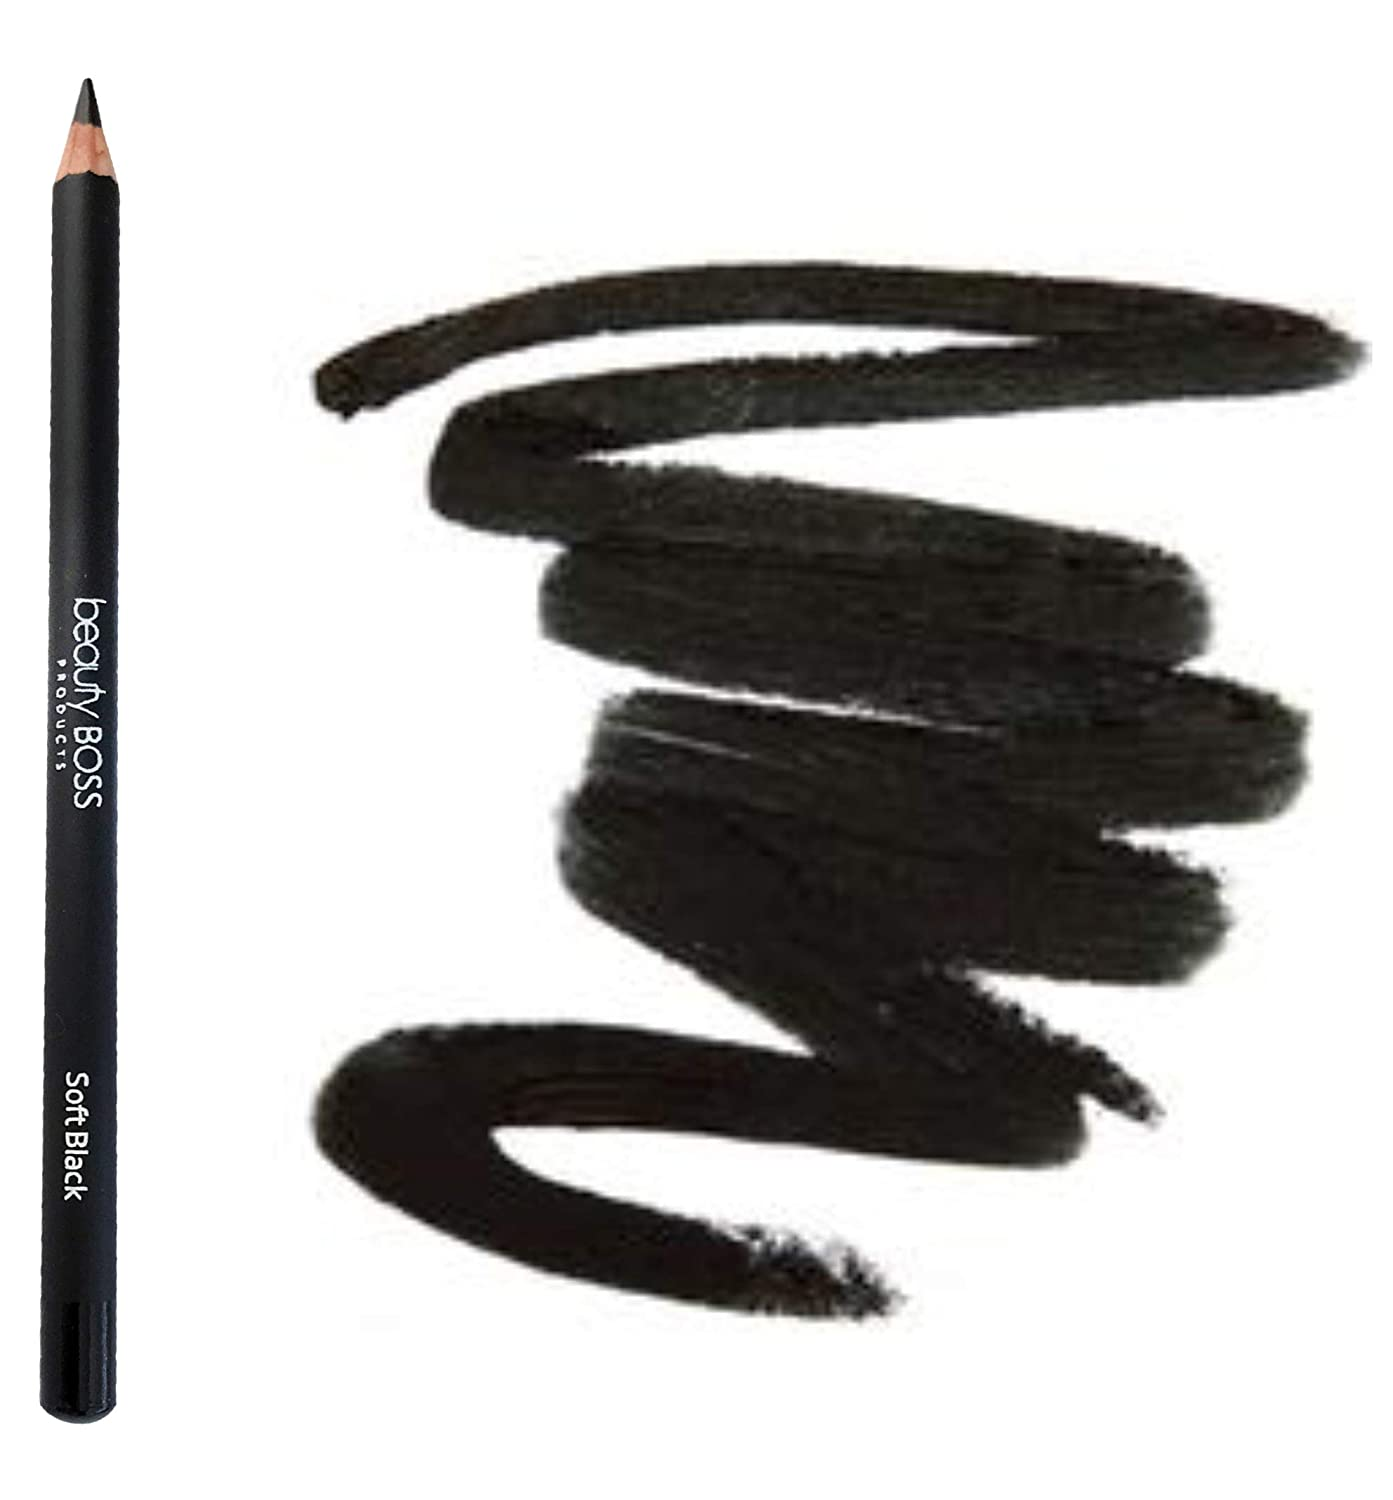 Perfect Eyebrow Pencil Smooth Formula for Bold Fuller and Fluffier Brows (Soft Black)